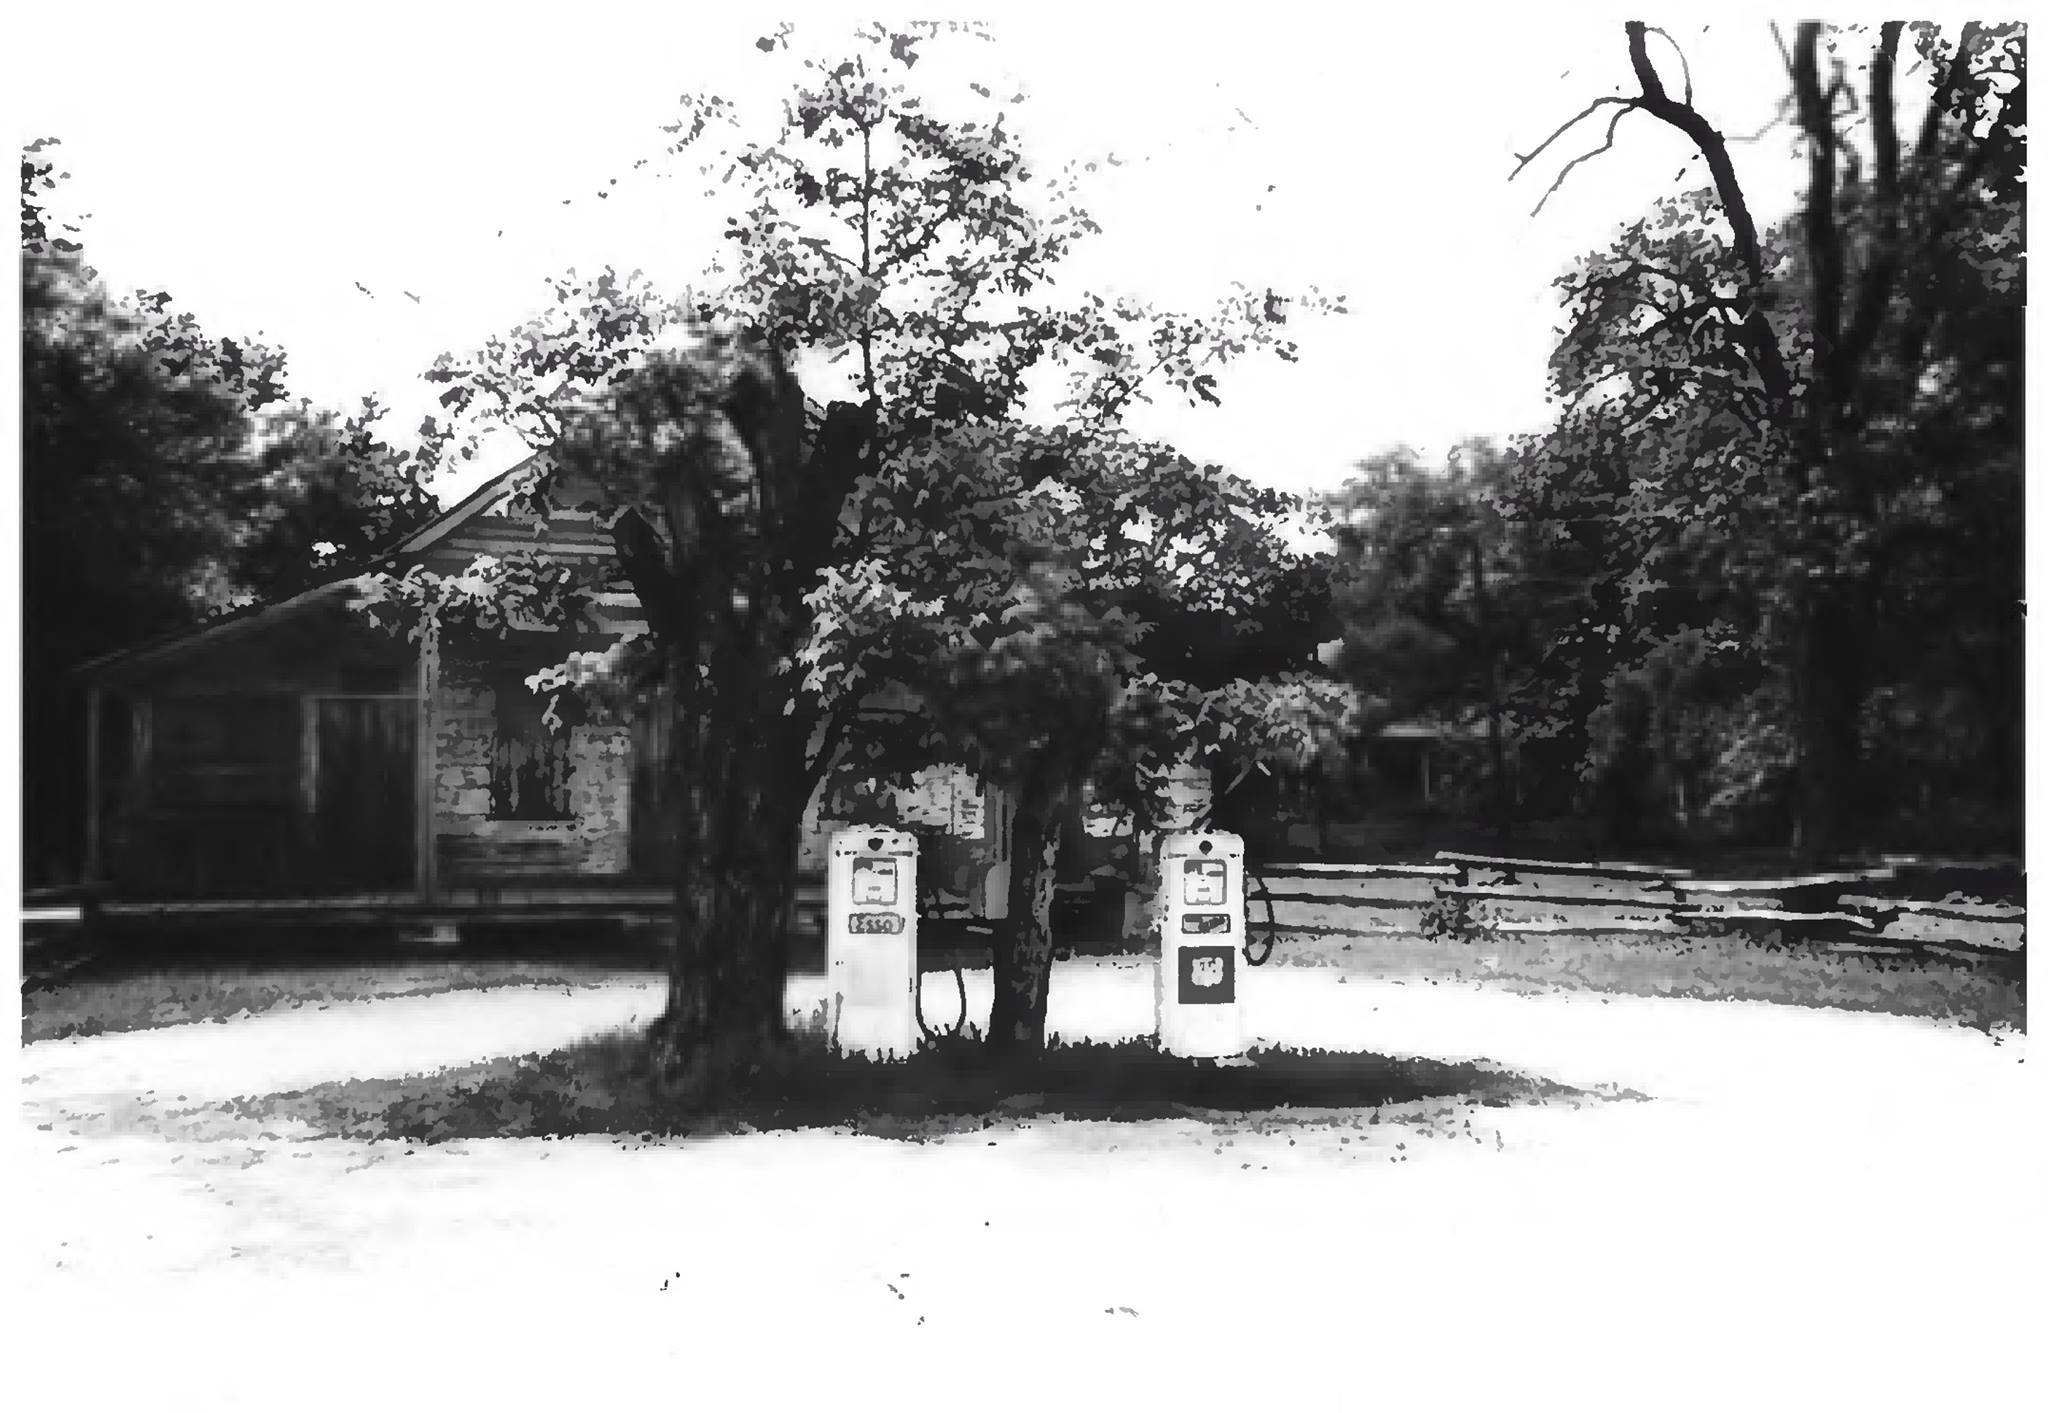 While a tree obscures the front of the Oakland Plantation Store in 1979 the two gas pumps are visible.